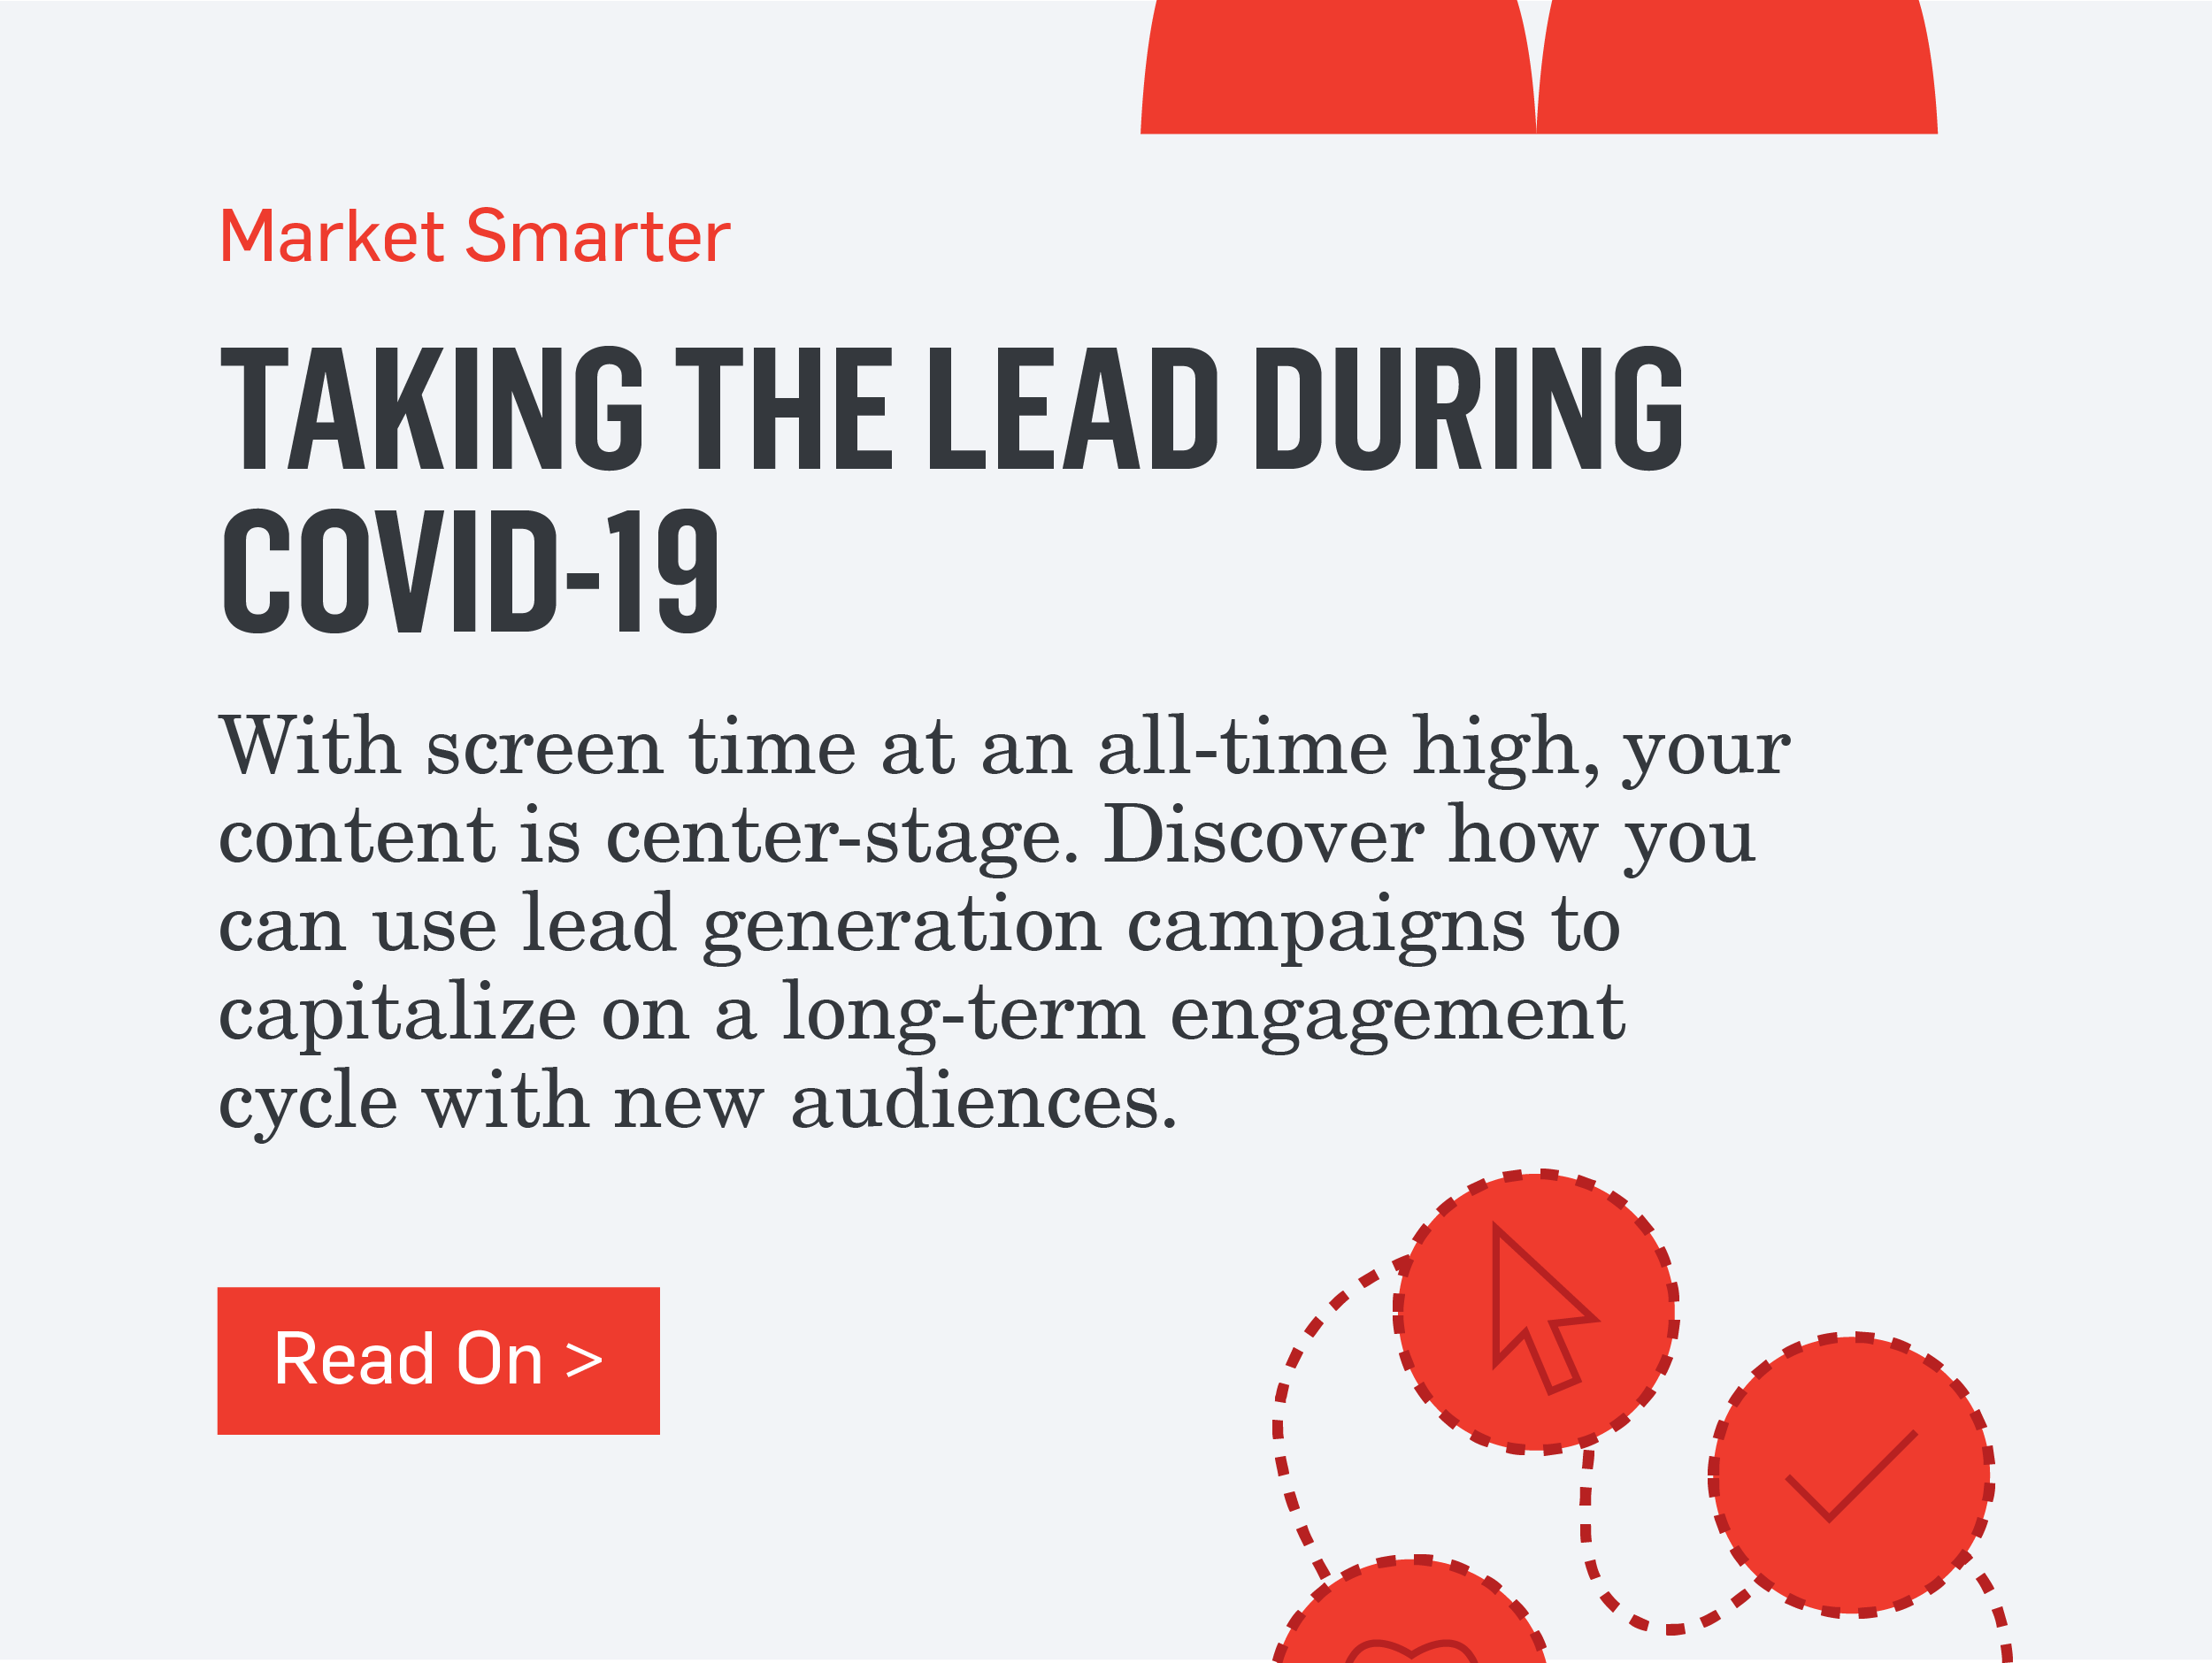 Market Smarter - TAKING THE LEAD DURING COVID-19 - With screen time at an all-time high, your content is center-stage. Discover how you can use lead generation campaigns to capitalize on a long-term engagement cycle with new audiences. >>>Read On>>>